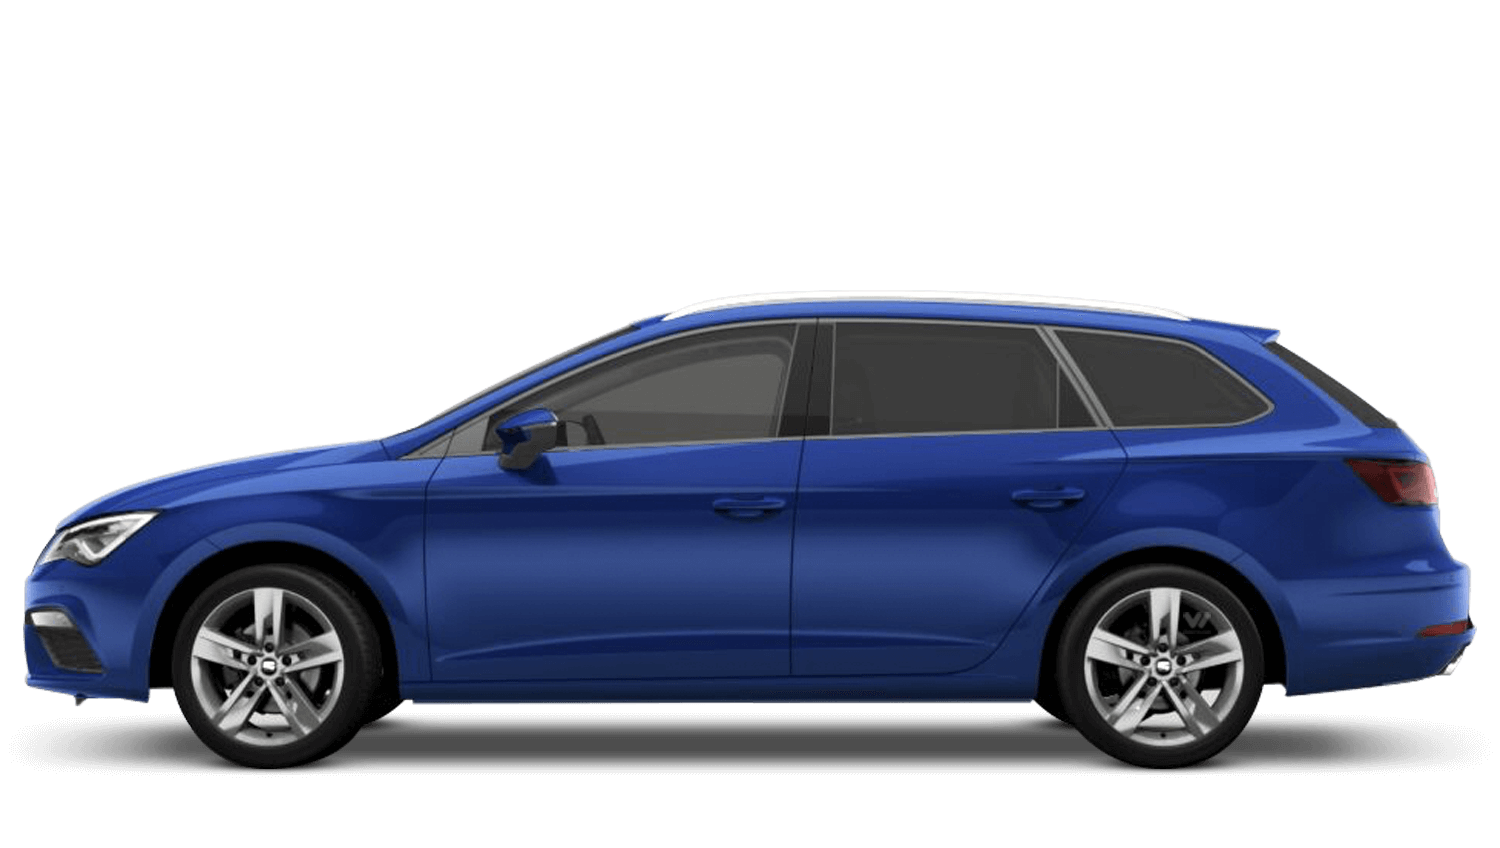 Mystery Blue (Metallic) SEAT Leon Estate